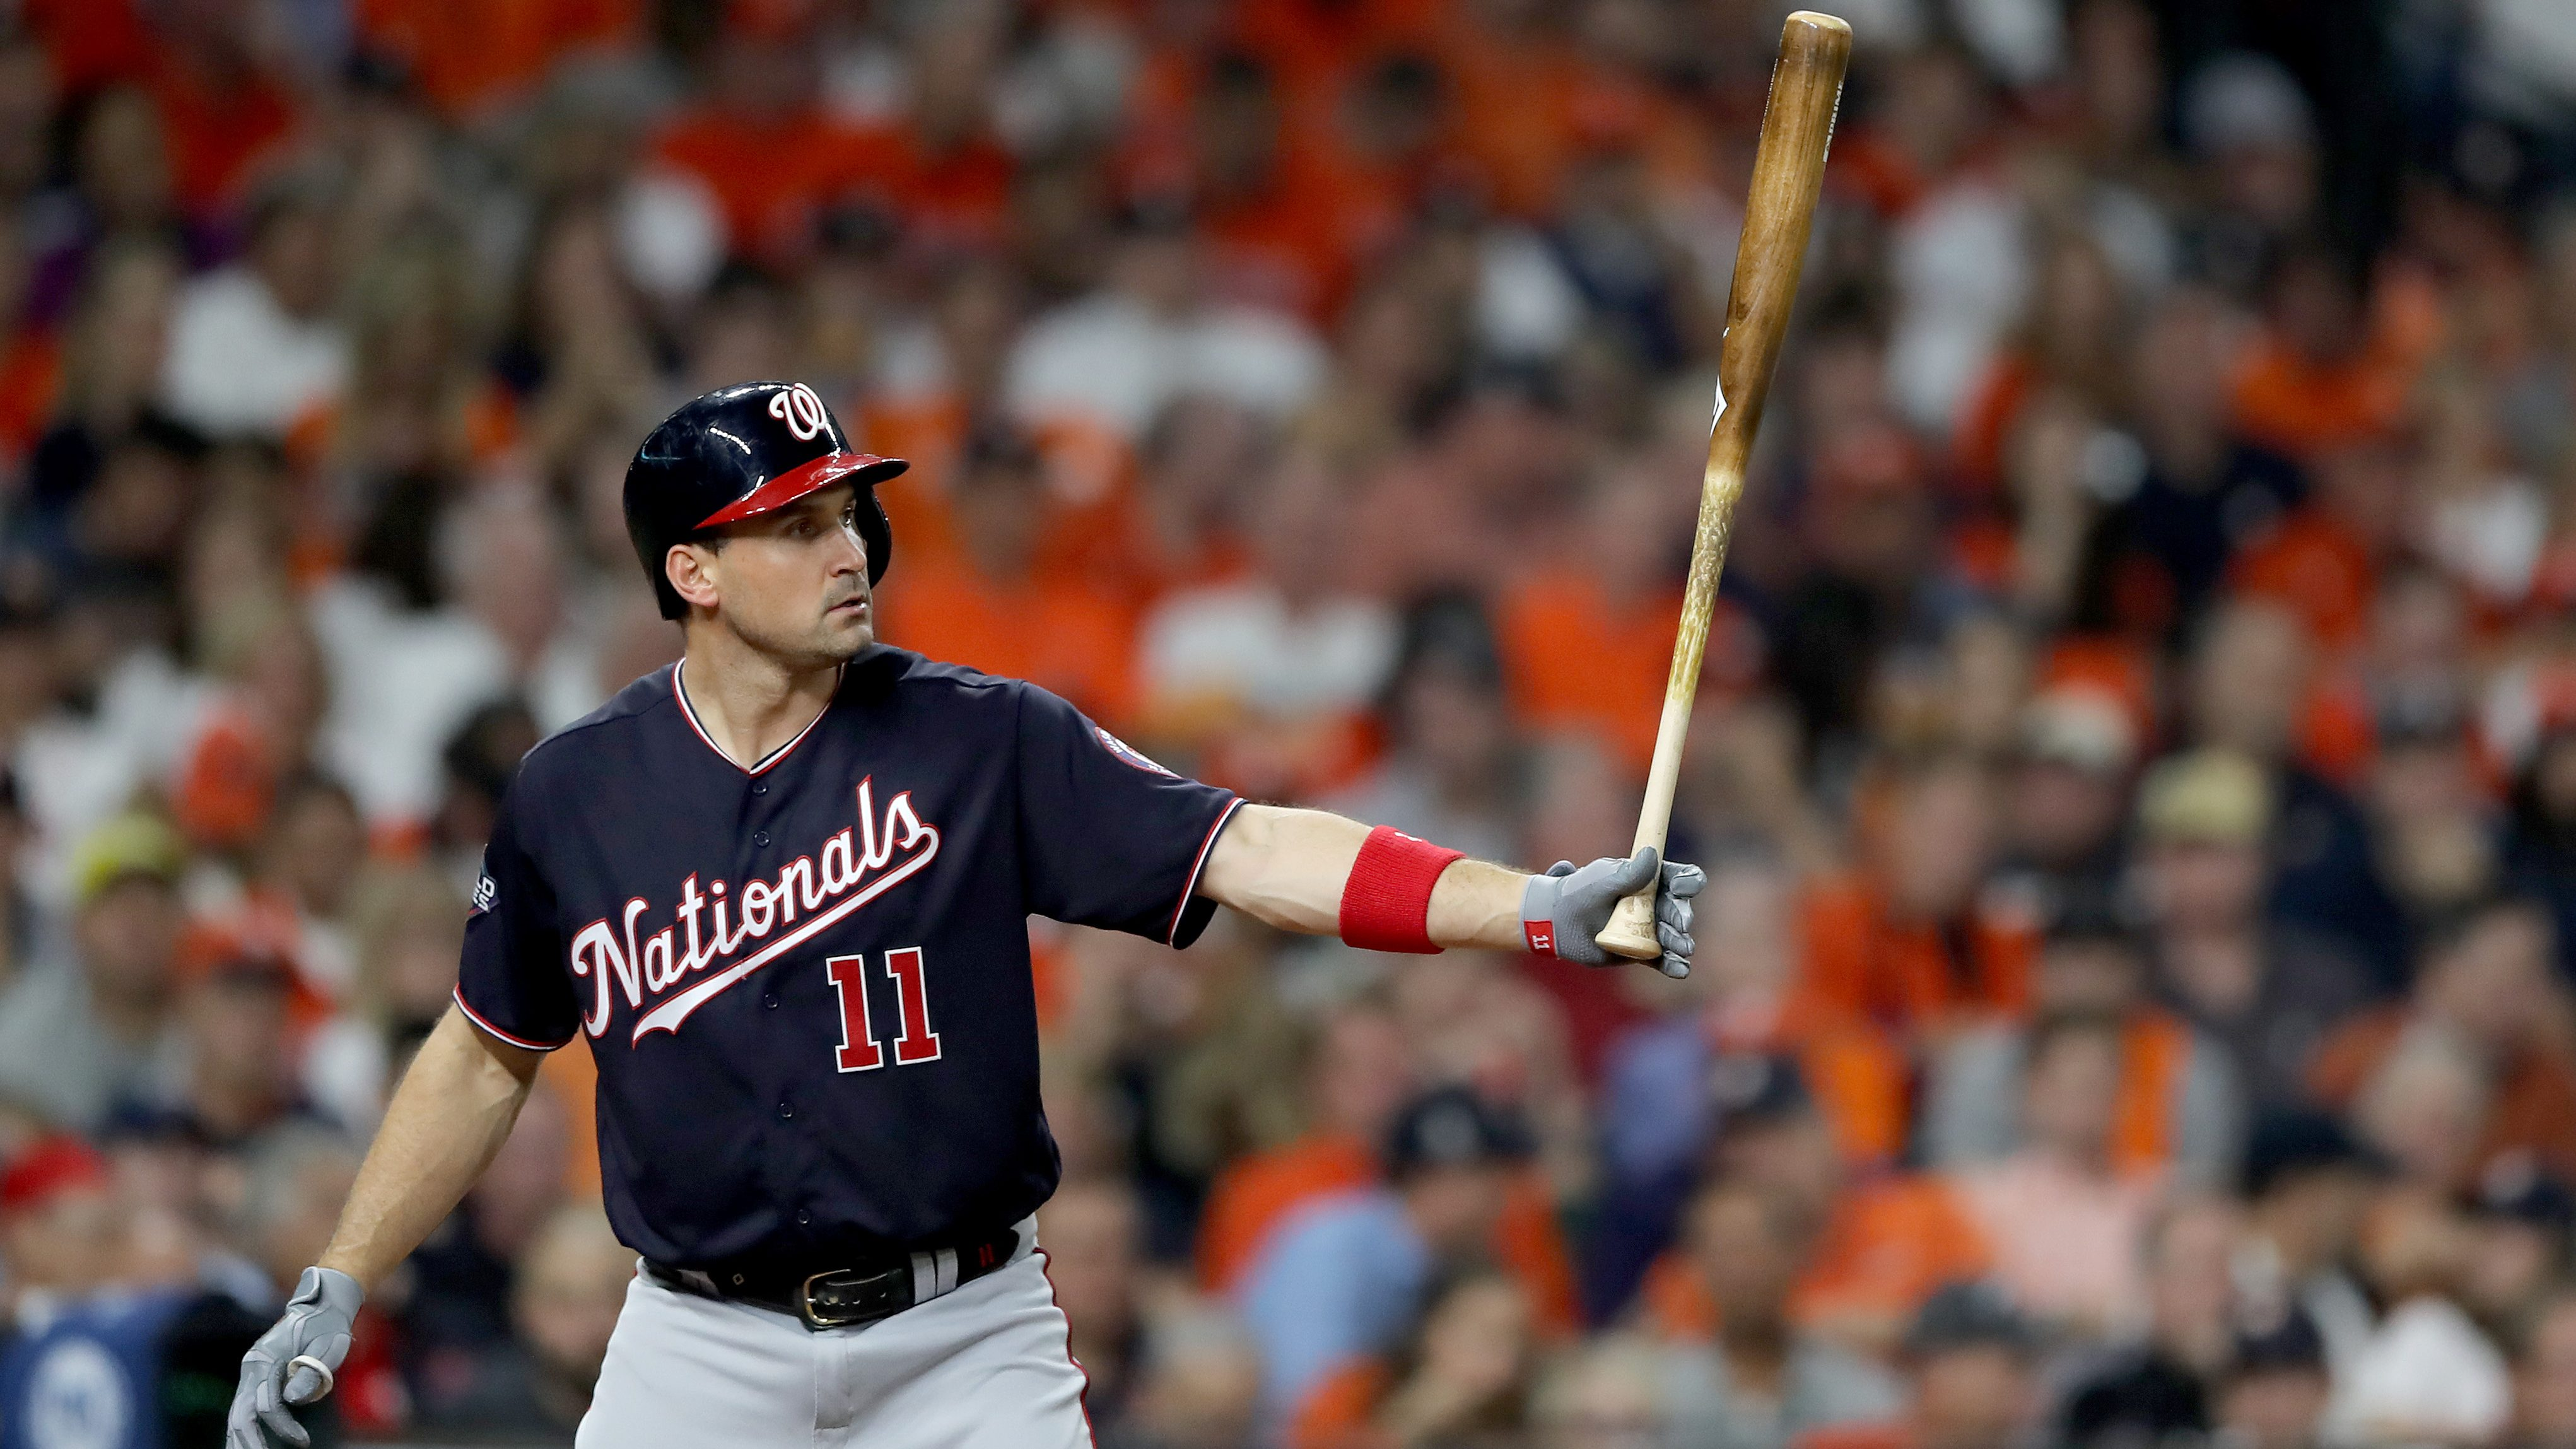 Nationals re-sign Ryan Zimmerman to one-year, $2 million deal